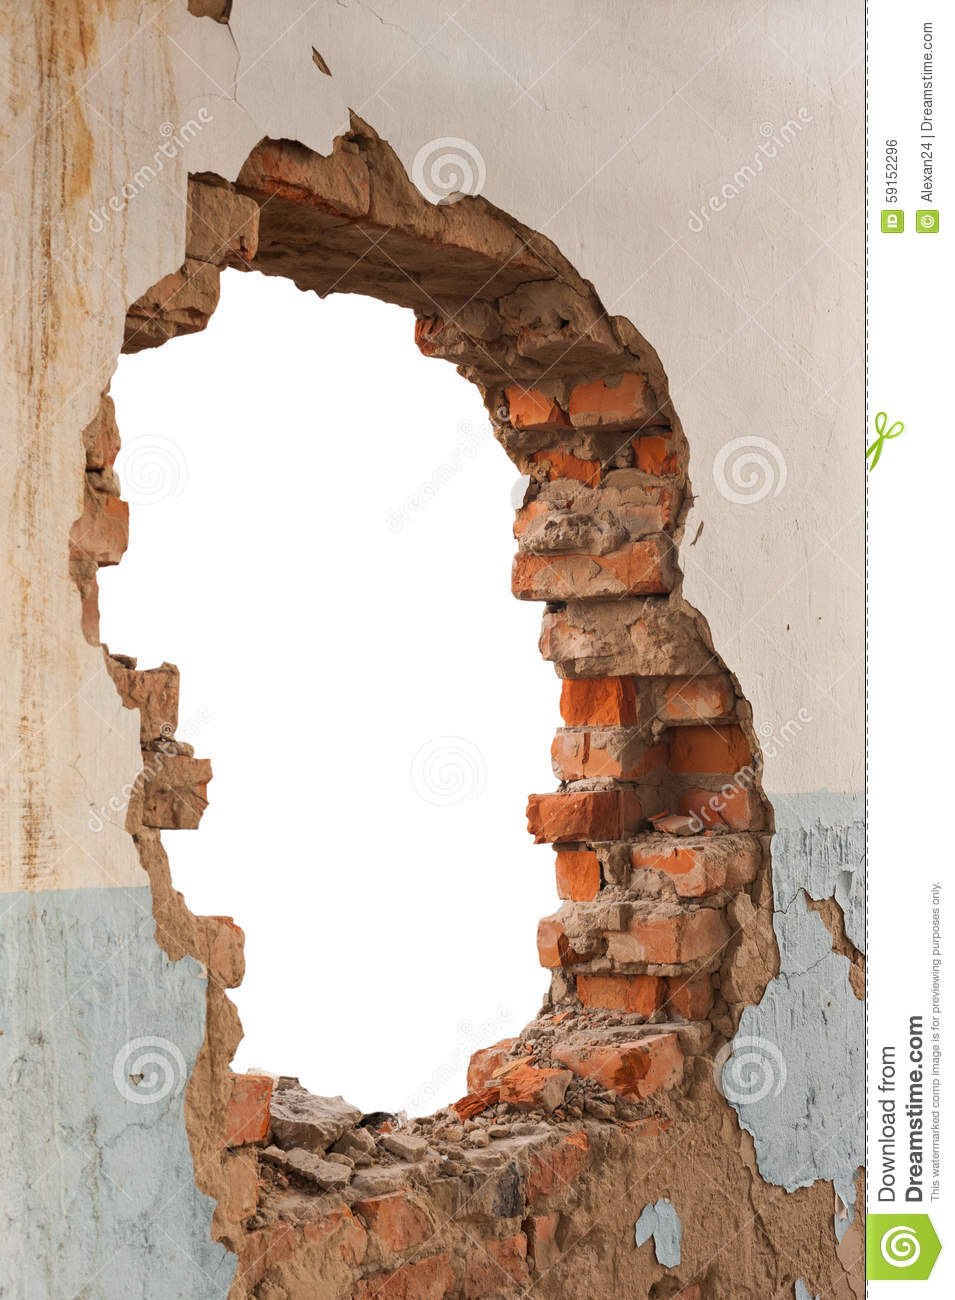 Hole brick wall stock photo. Image of disrepair, broken ...